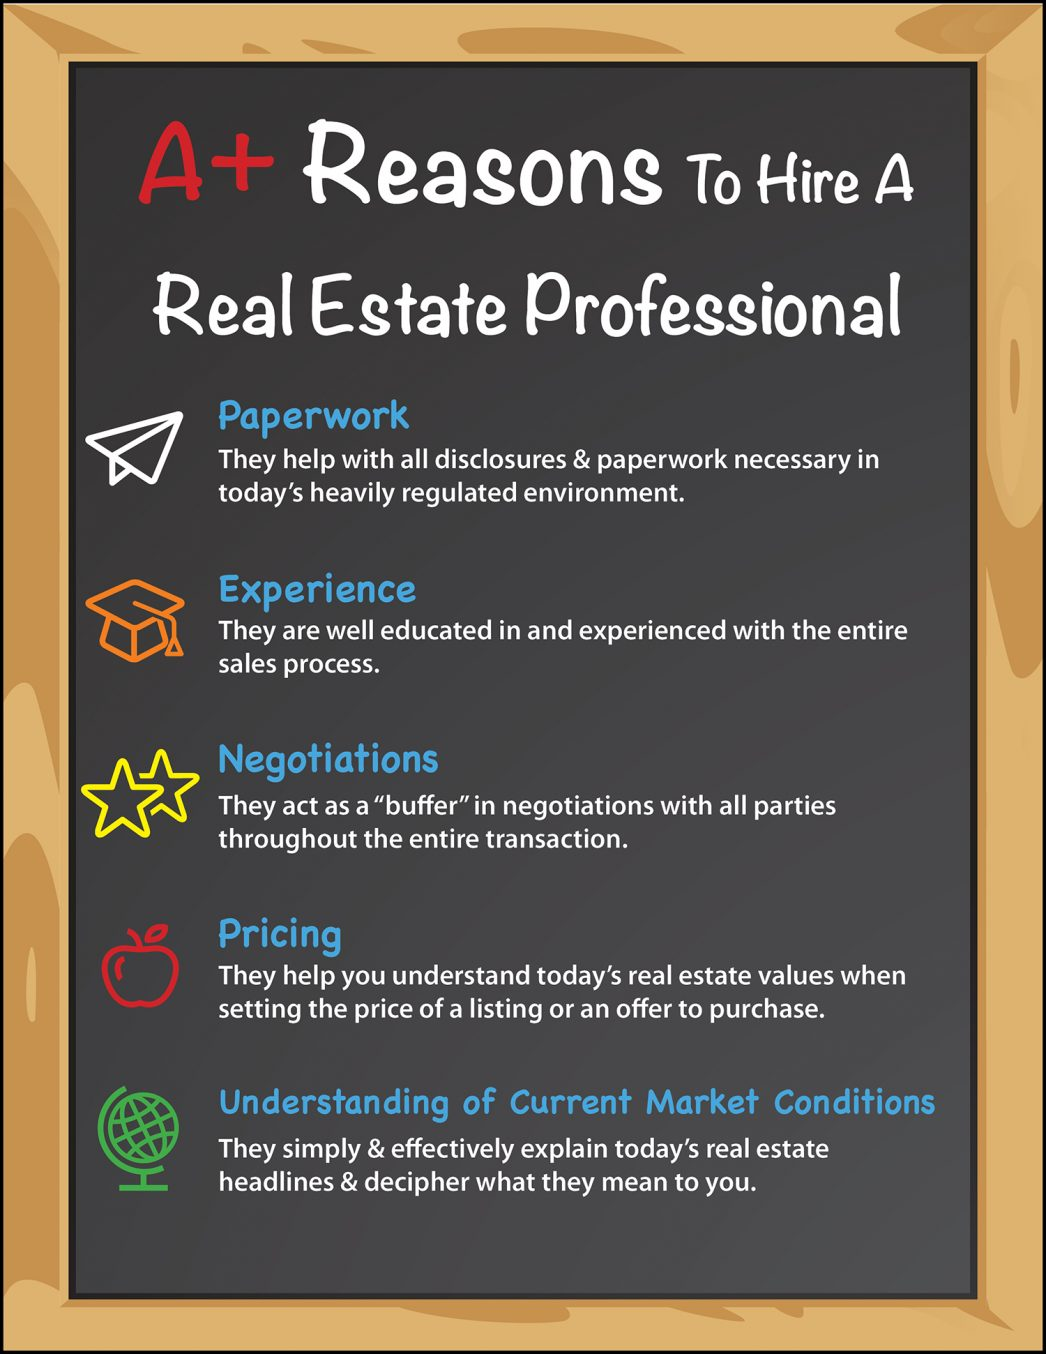 A+ Reasons to Hire a Real Estate Pro [INFOGRAPHIC] | MyKCM